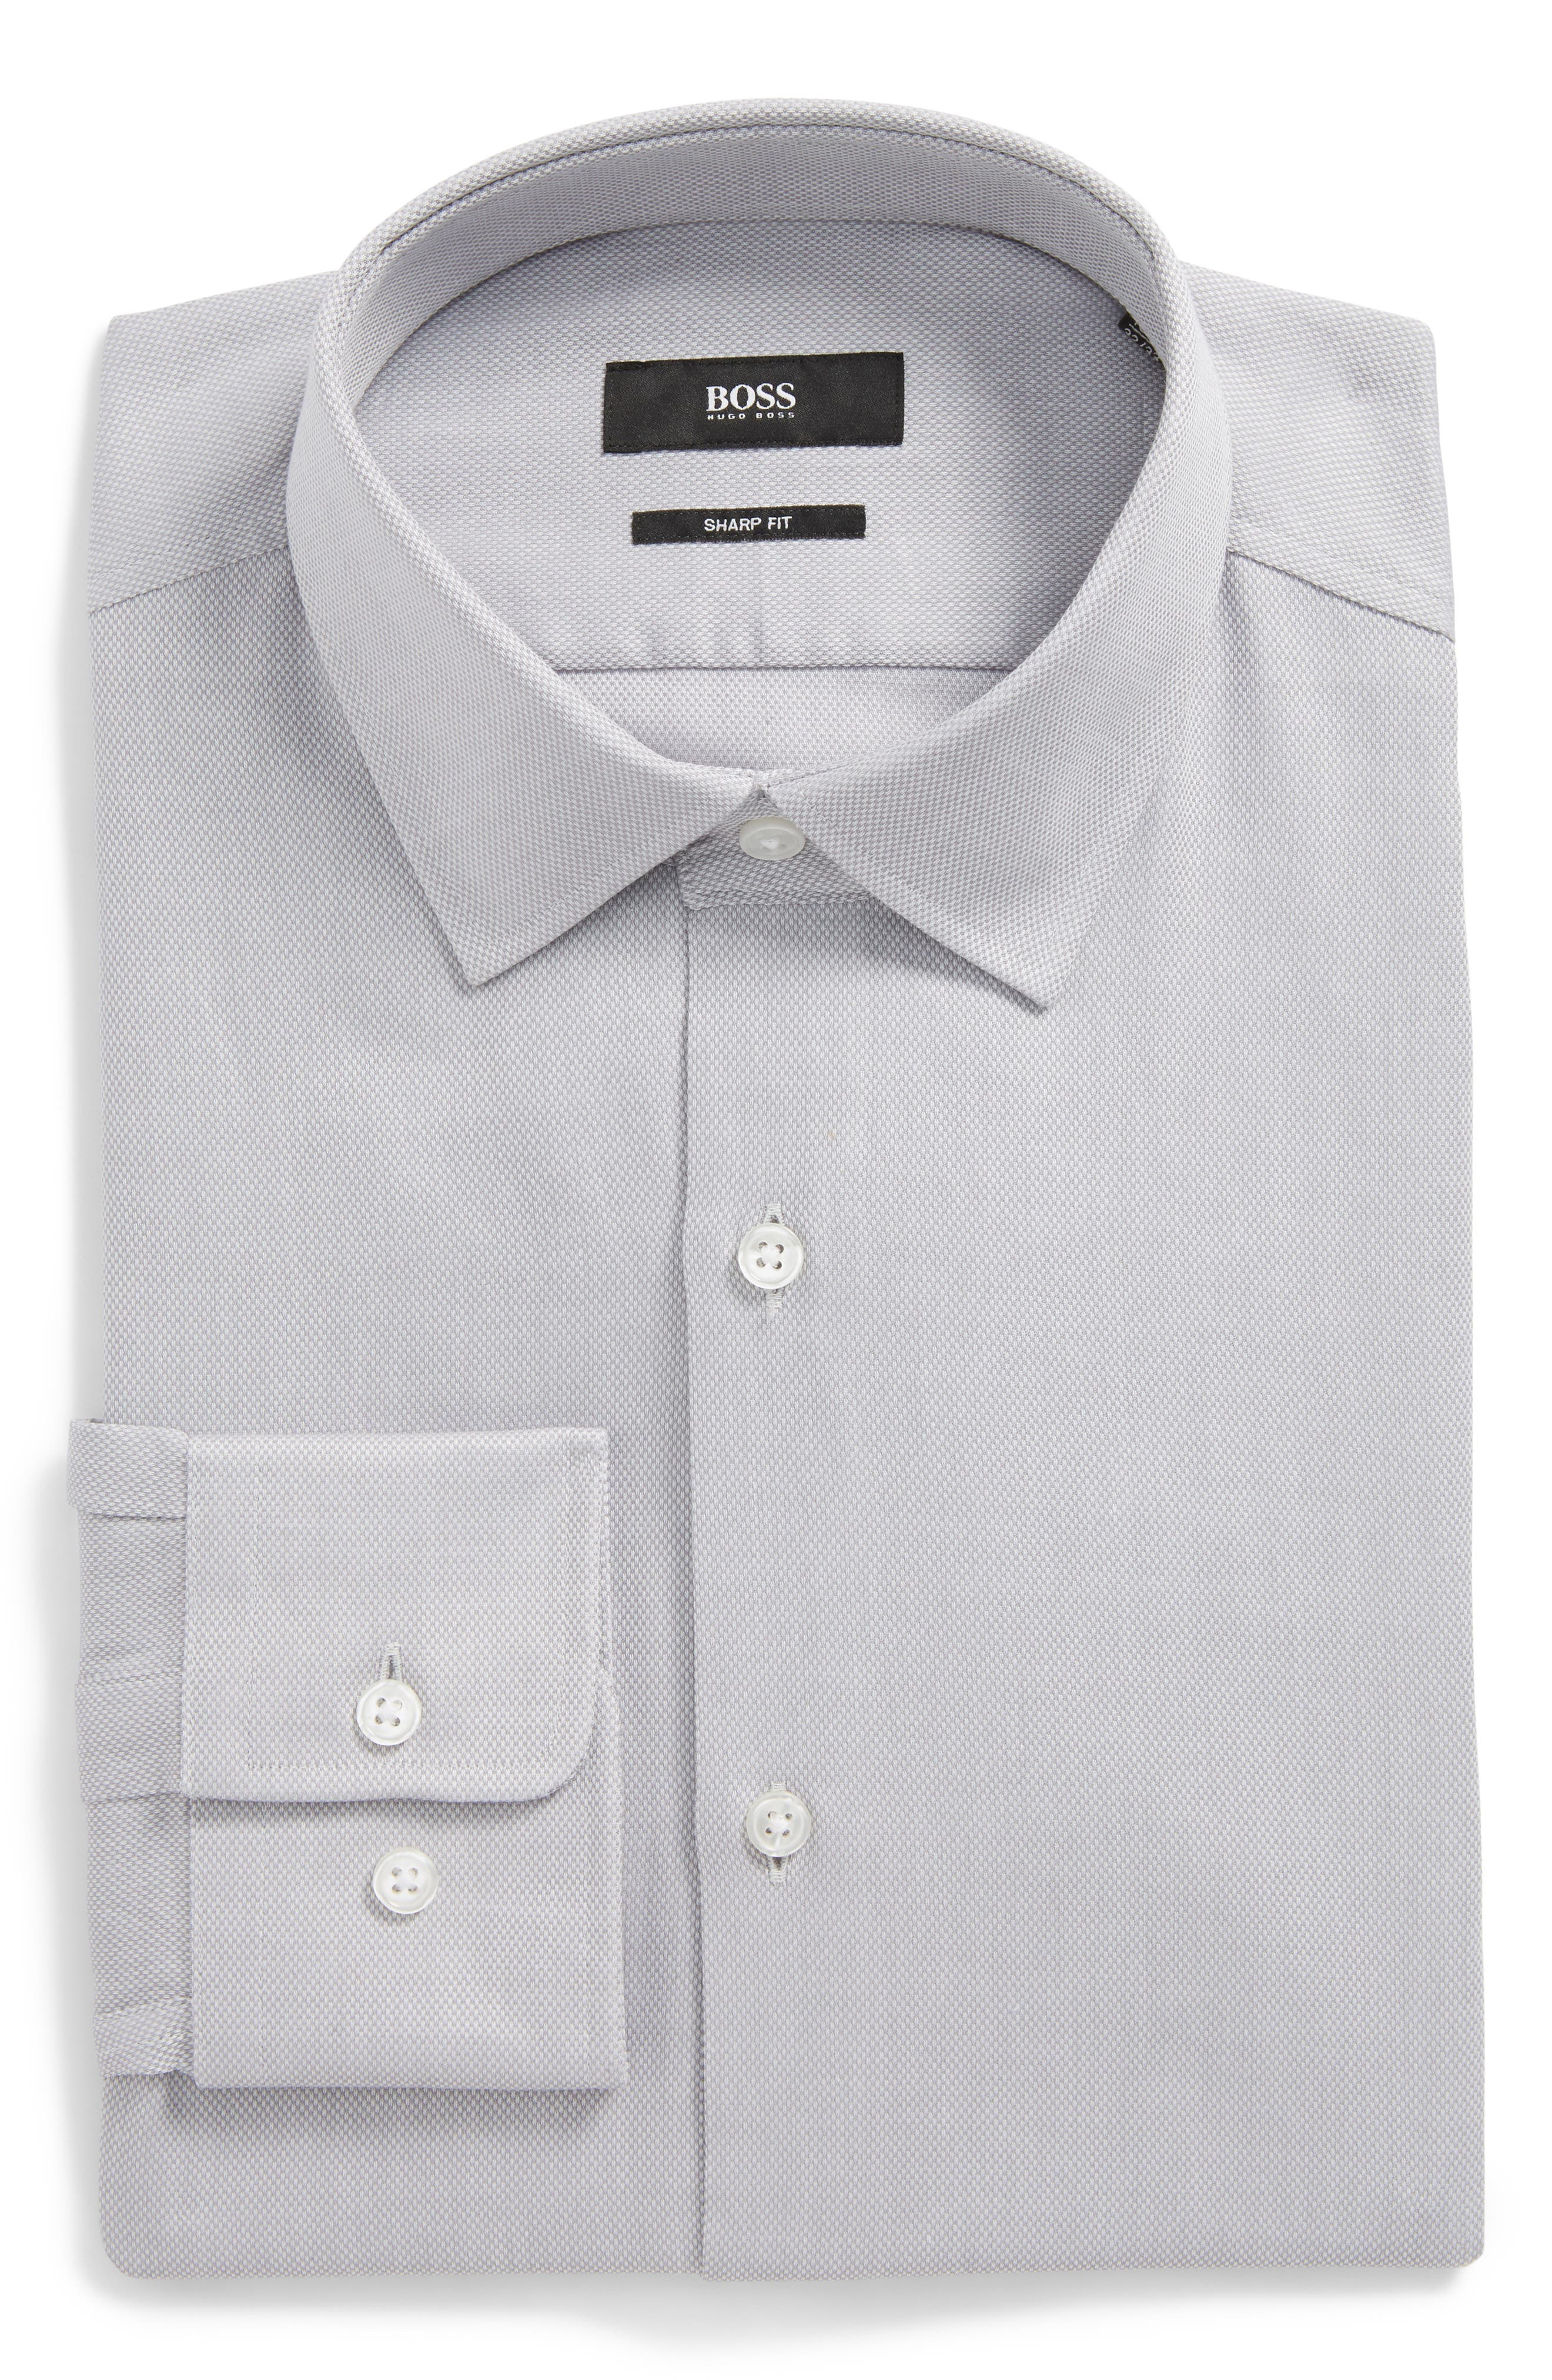 BOSS Marley Sharp Fit Dress Shirt, Main, color, GREY